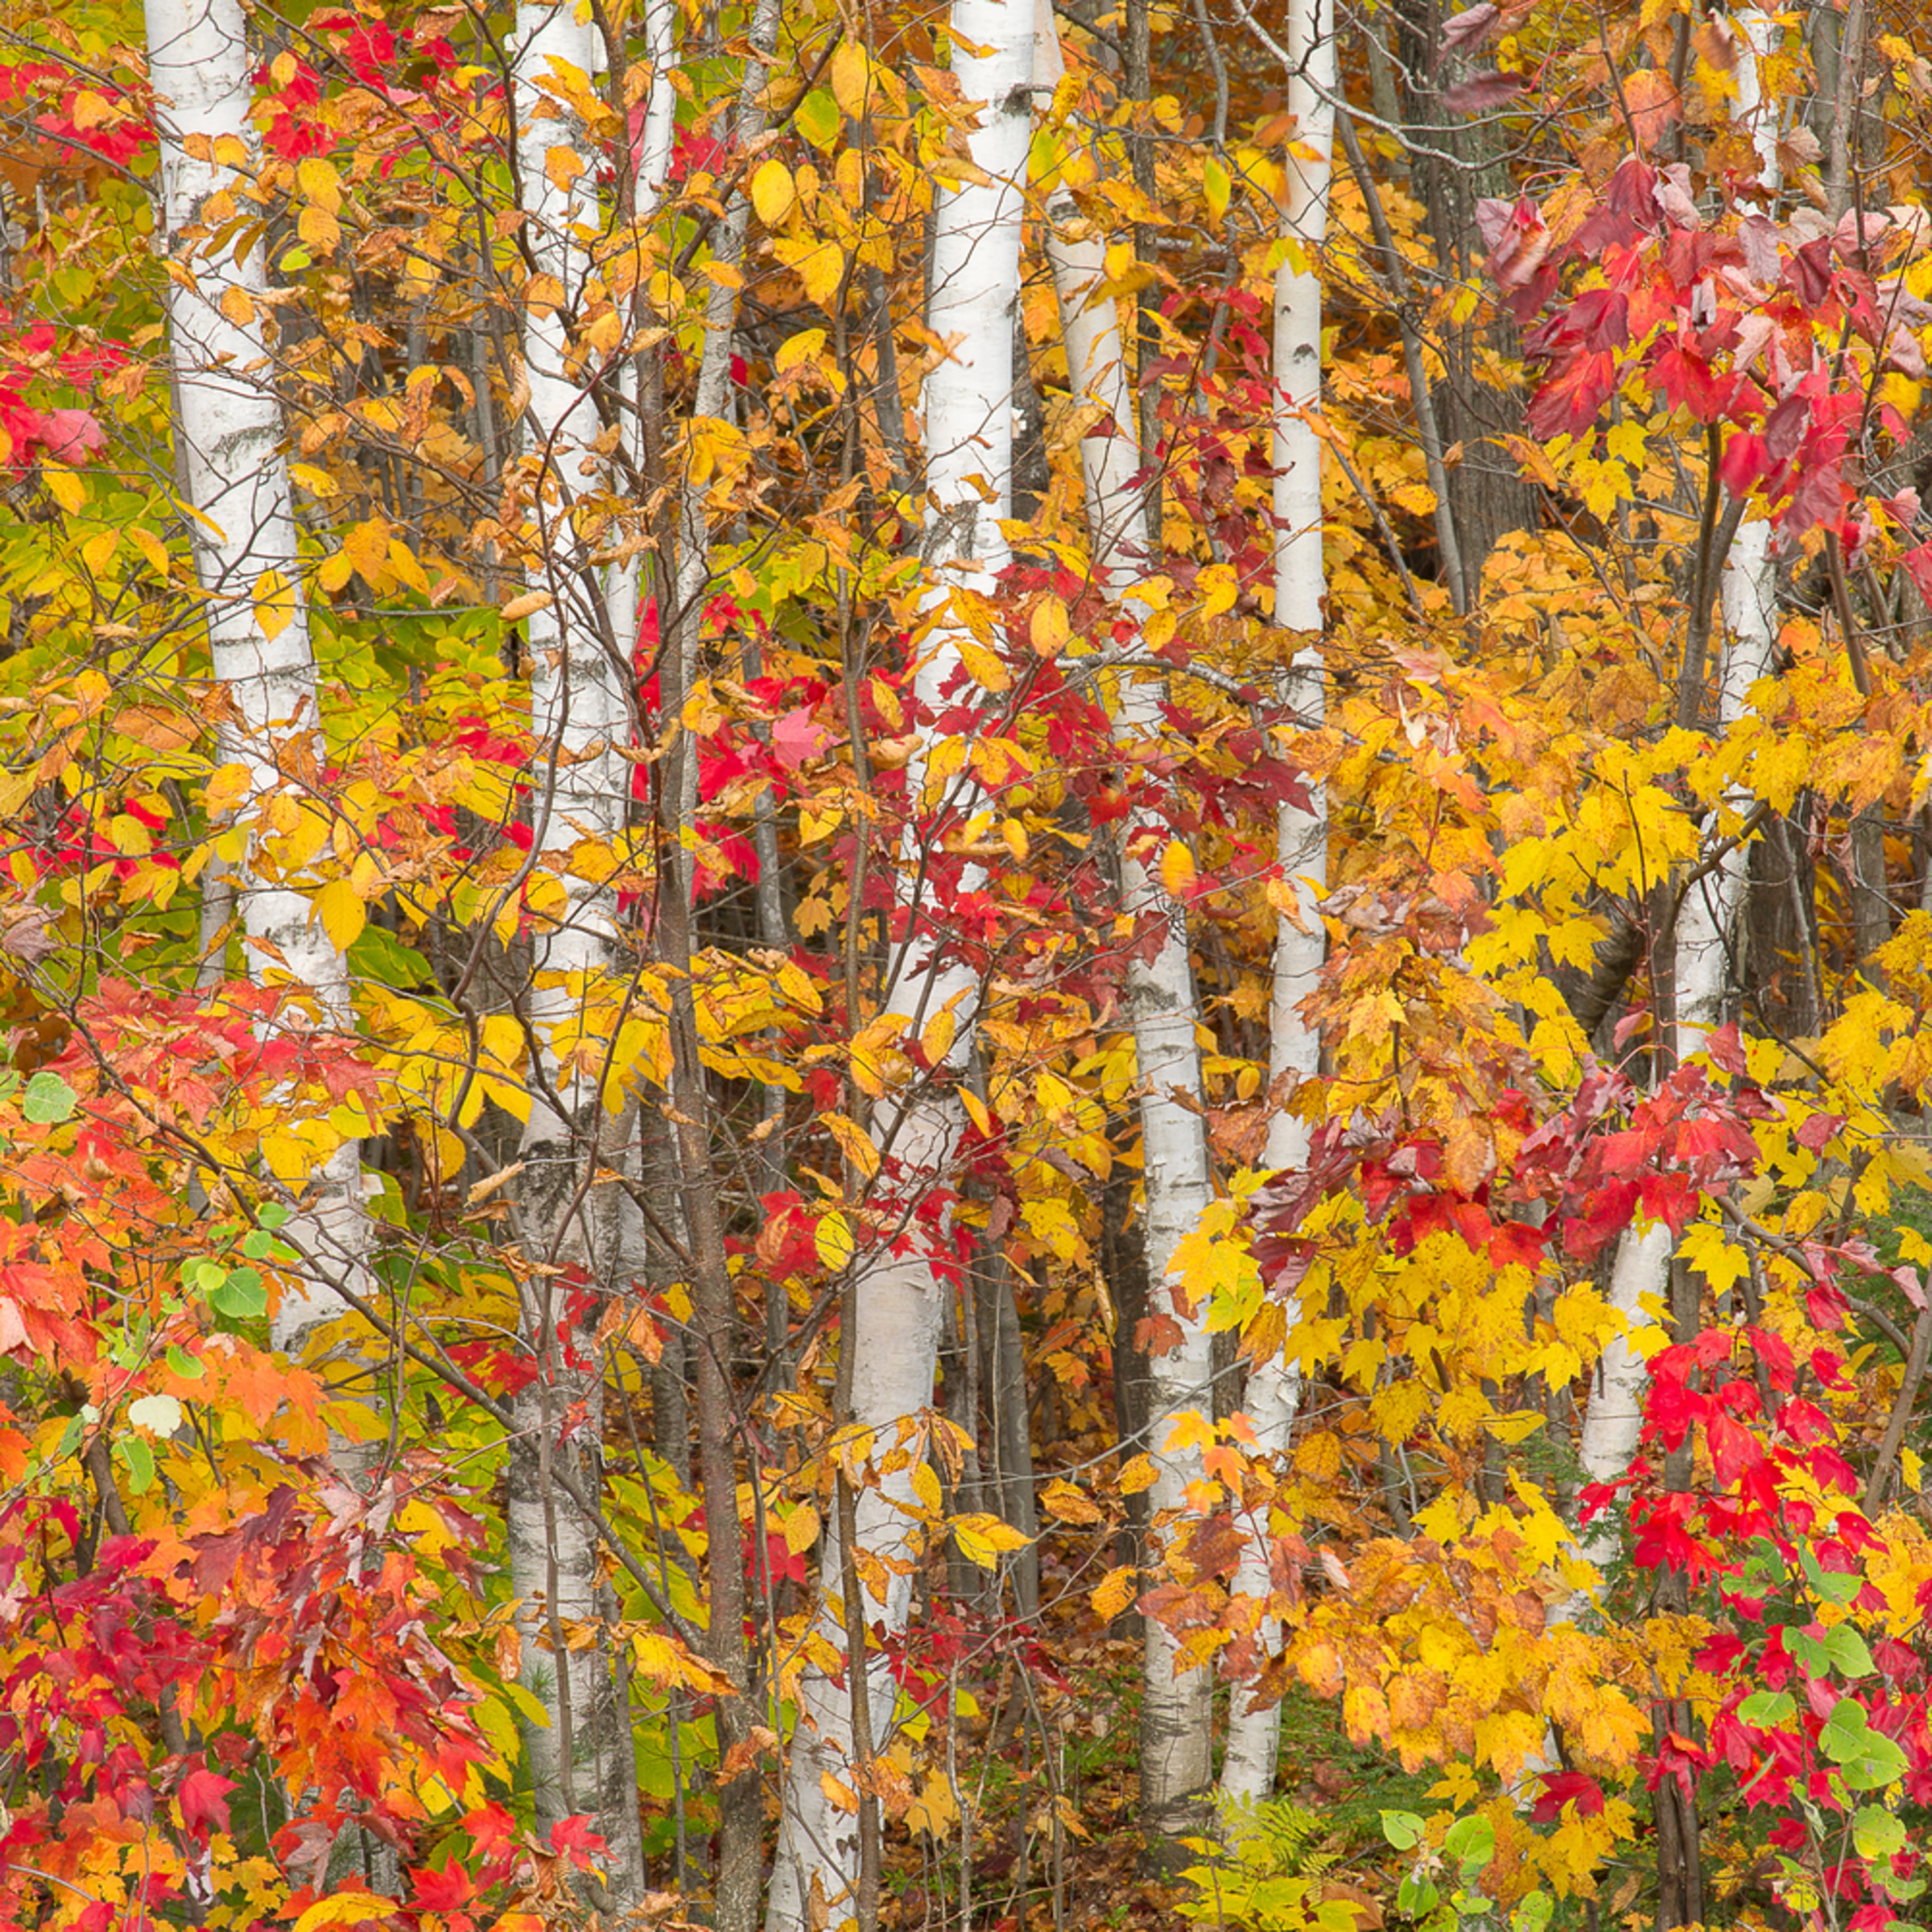 Birches in fall koq6pk